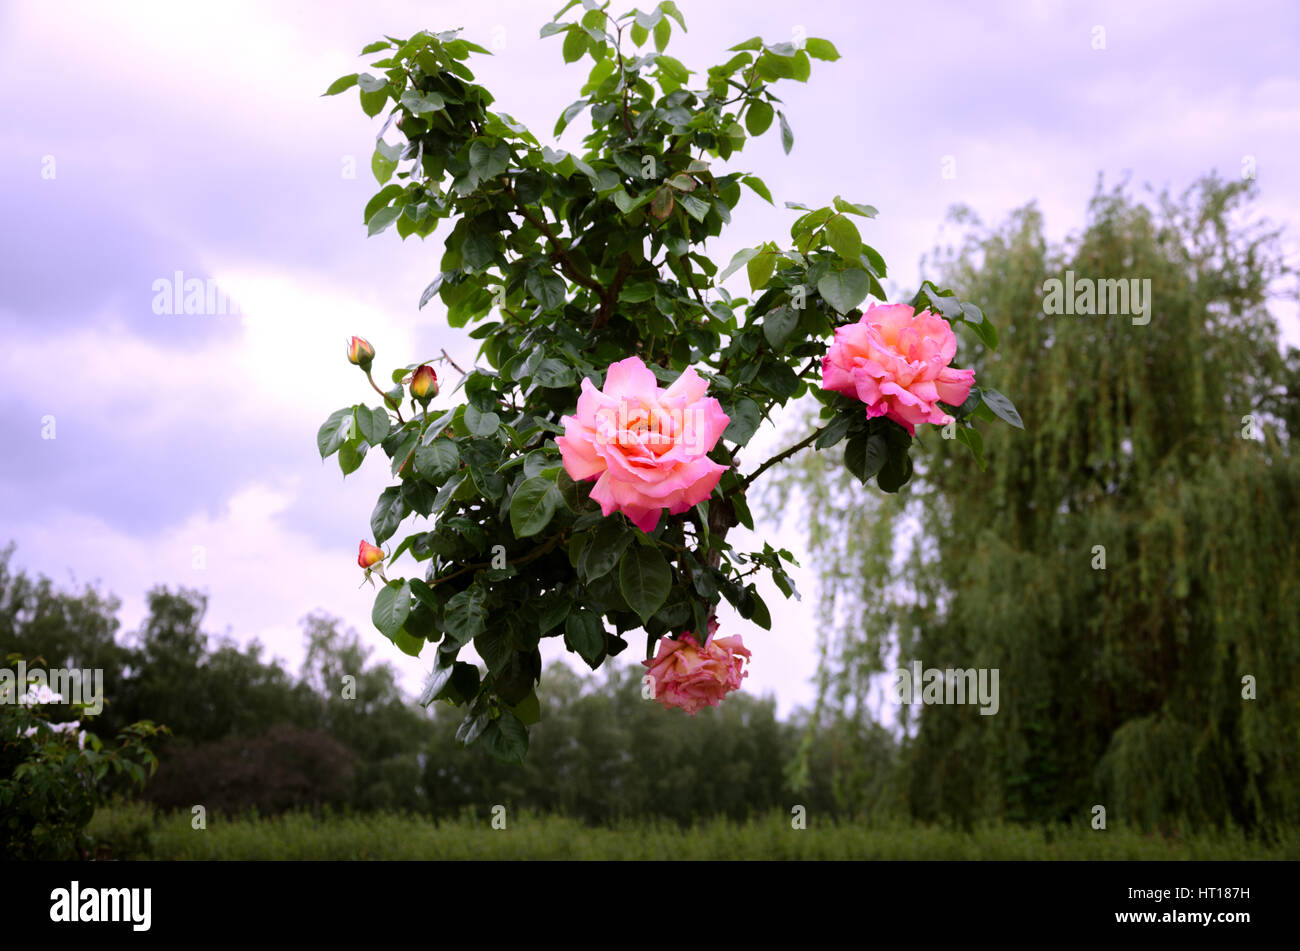 Beautiful flowering shrub roses against the sky and weeping willow stock image